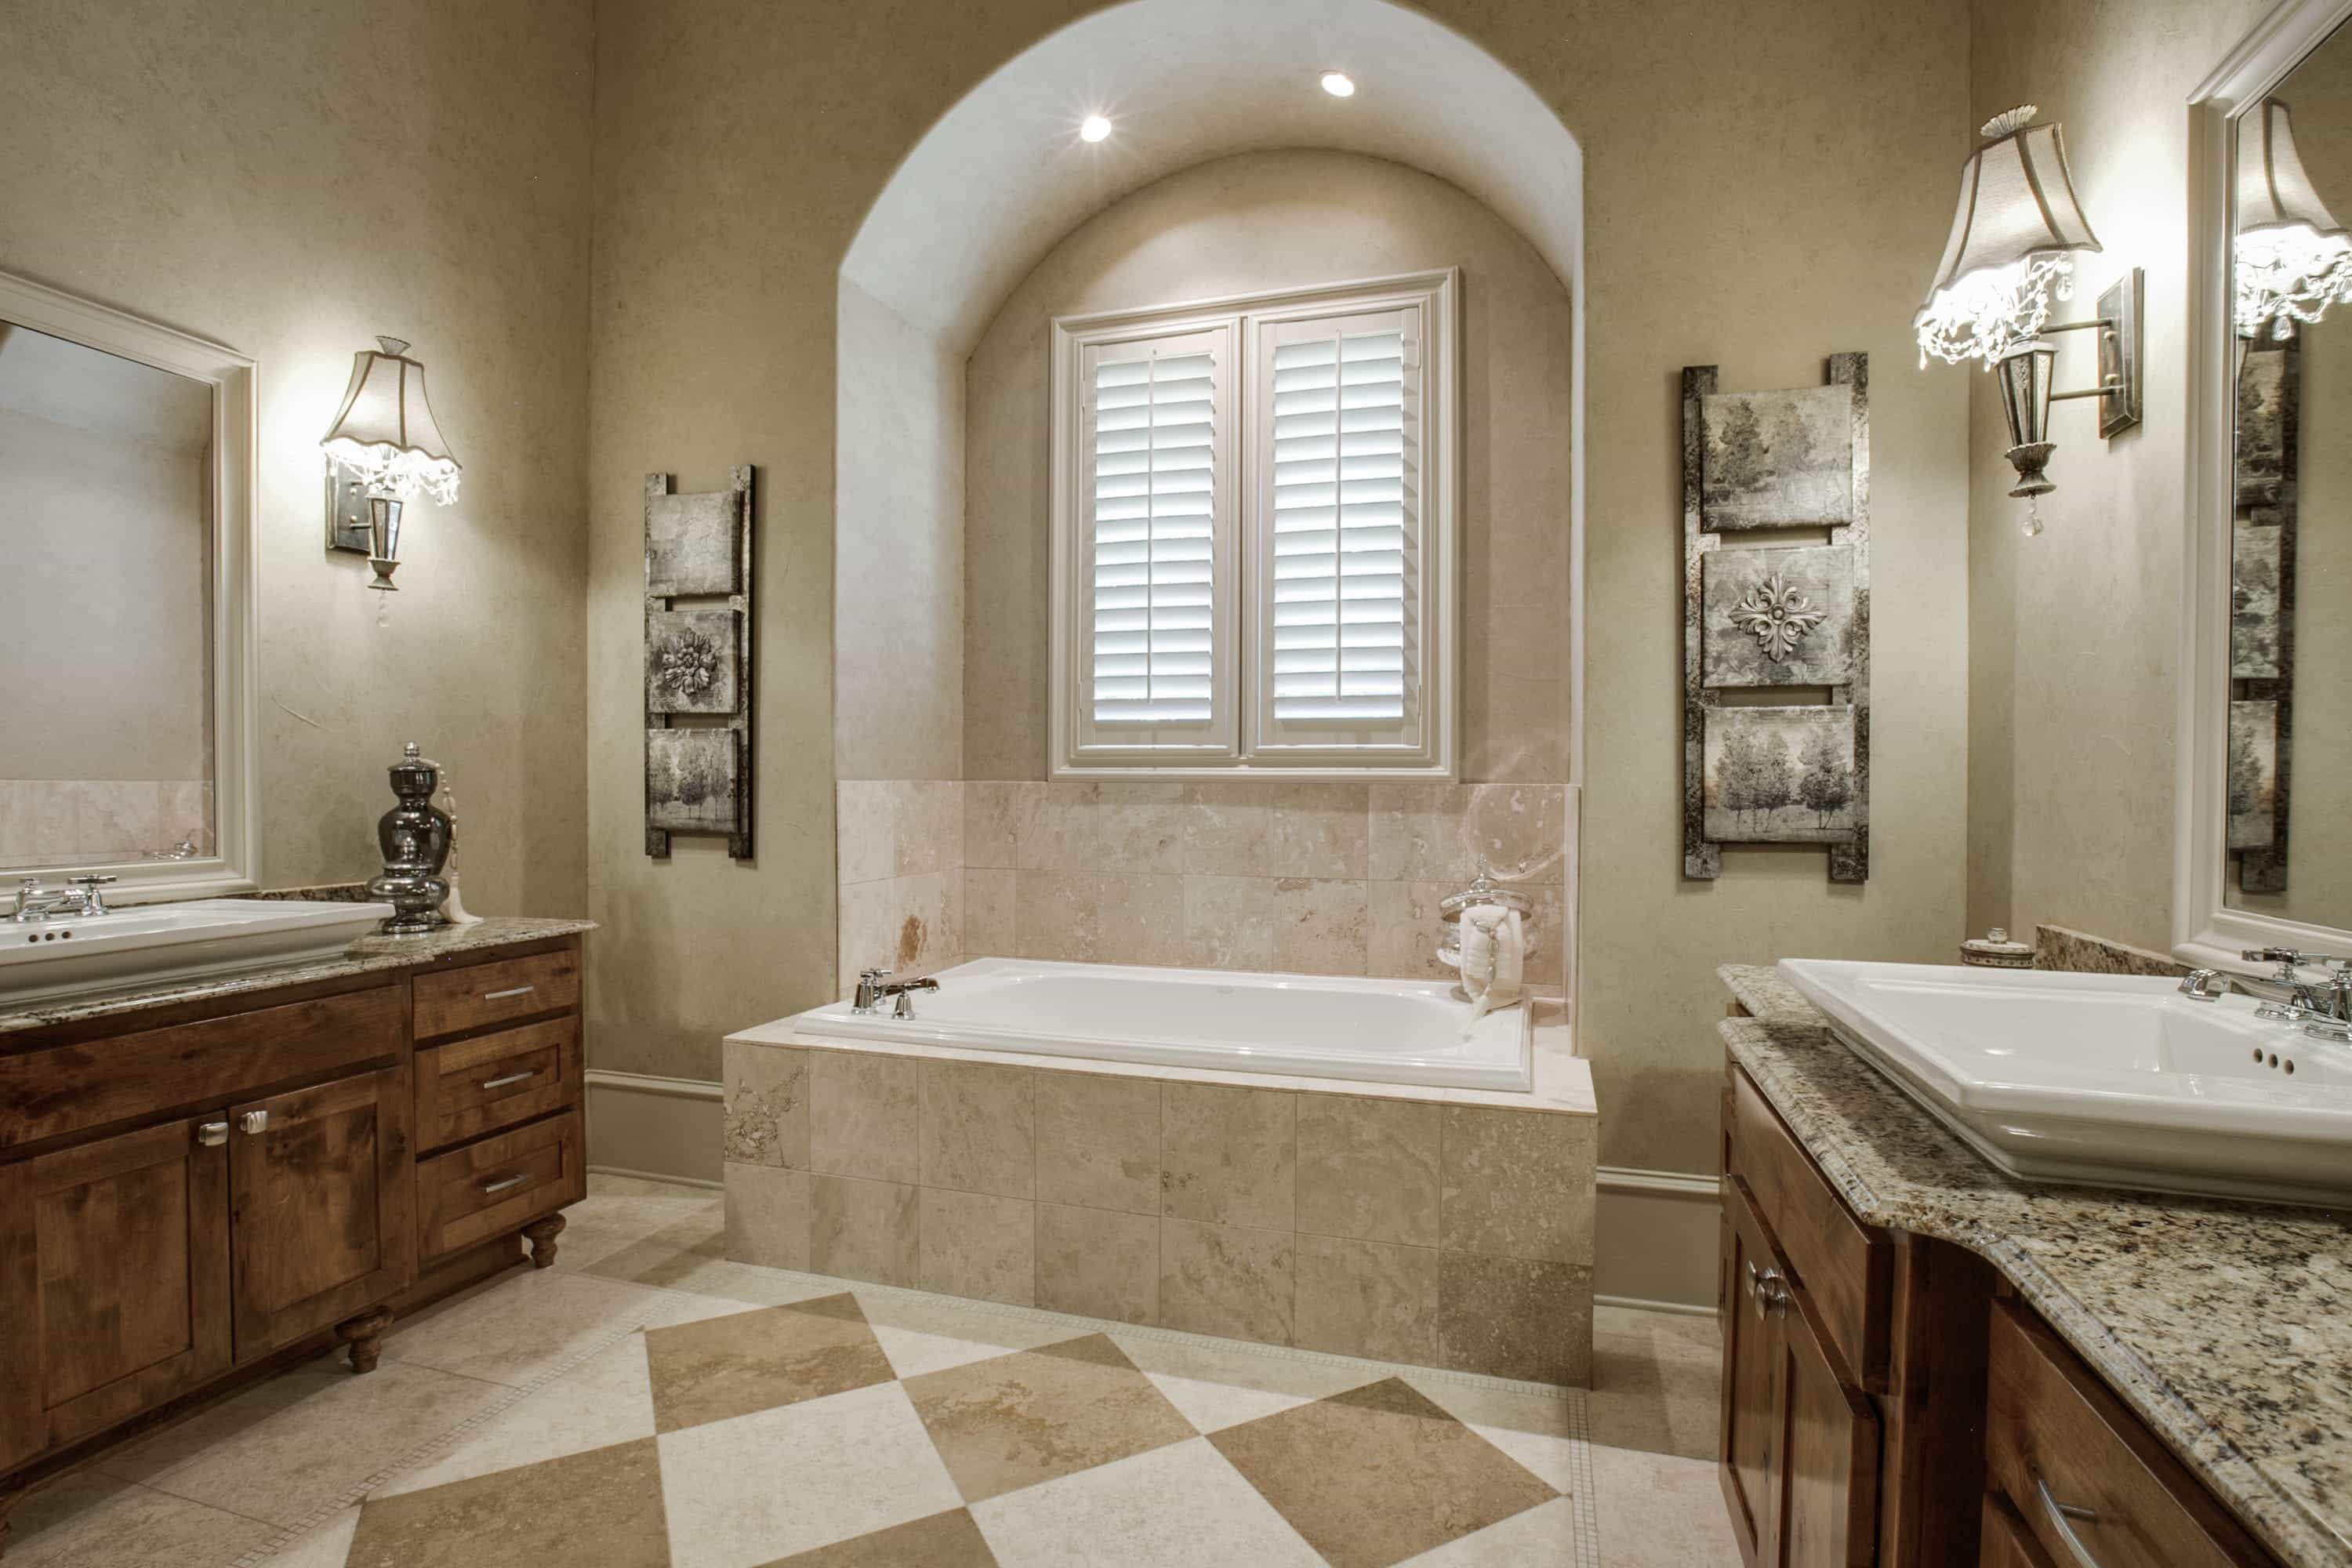 Classic French Bathroom With Diamond Pattern Tile (Image 4 of 20)